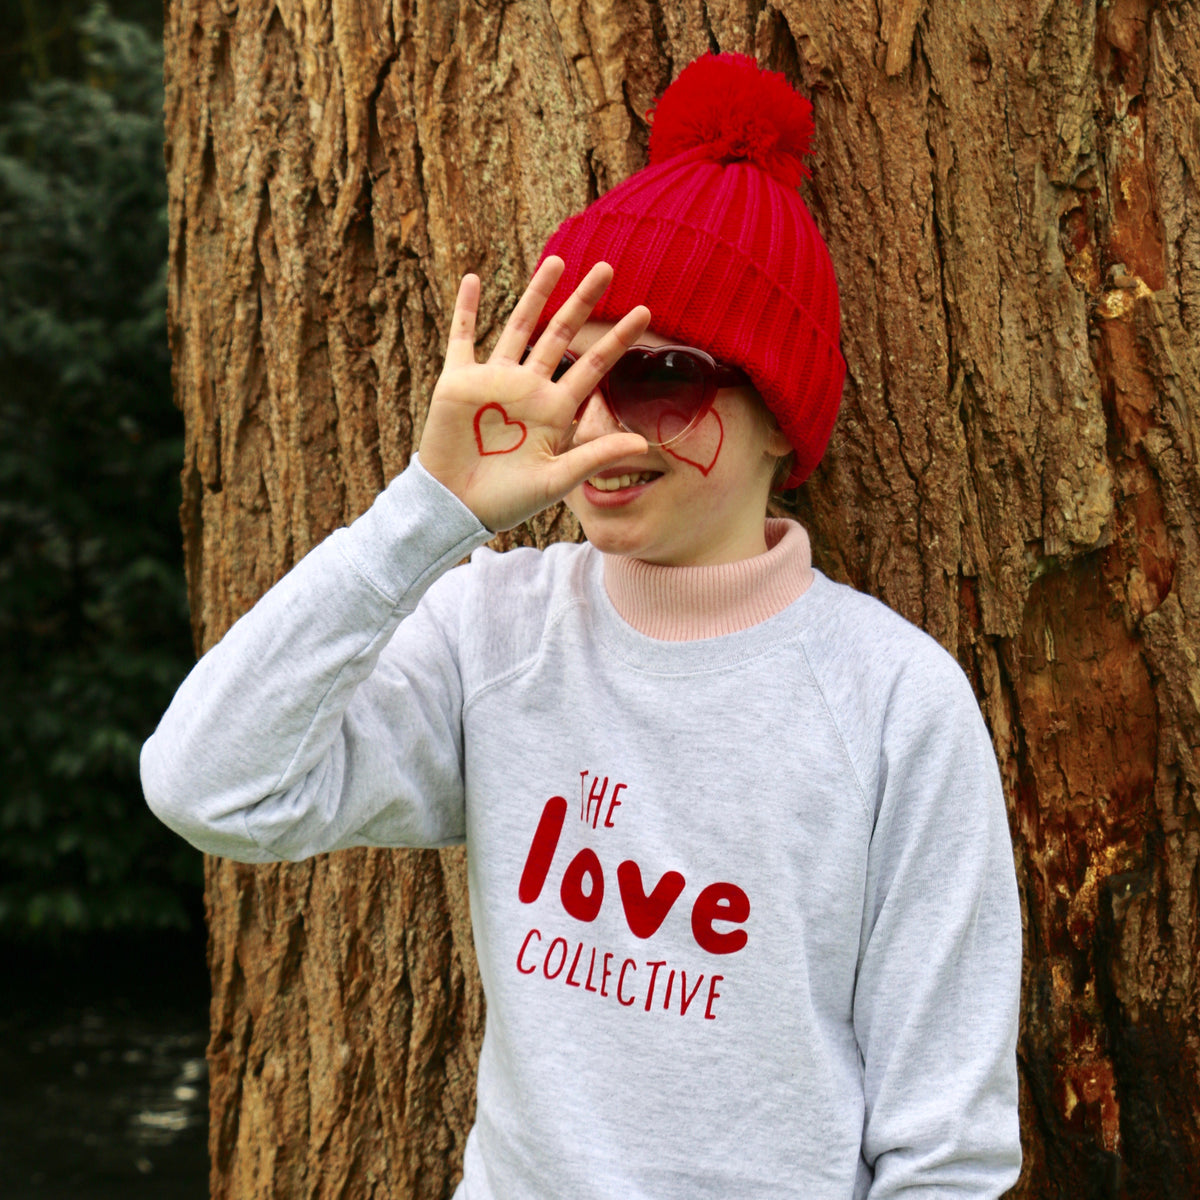 The Love Collective Child's Screen Printed Sweatshirt